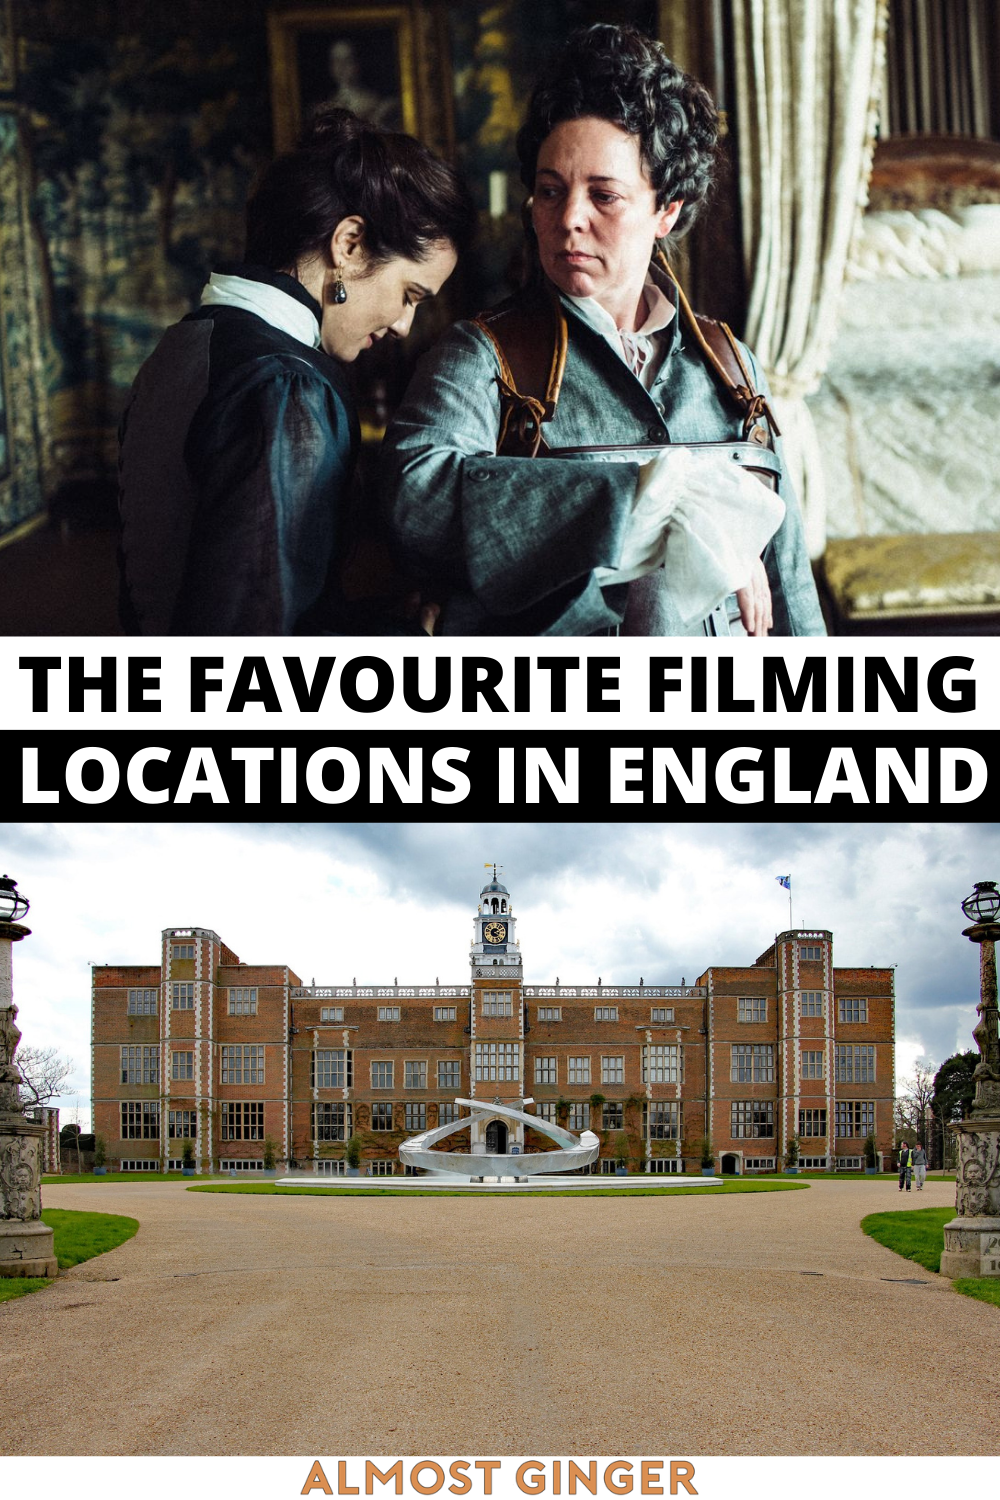 The Favourite Filming Locations in England   almostginger.com